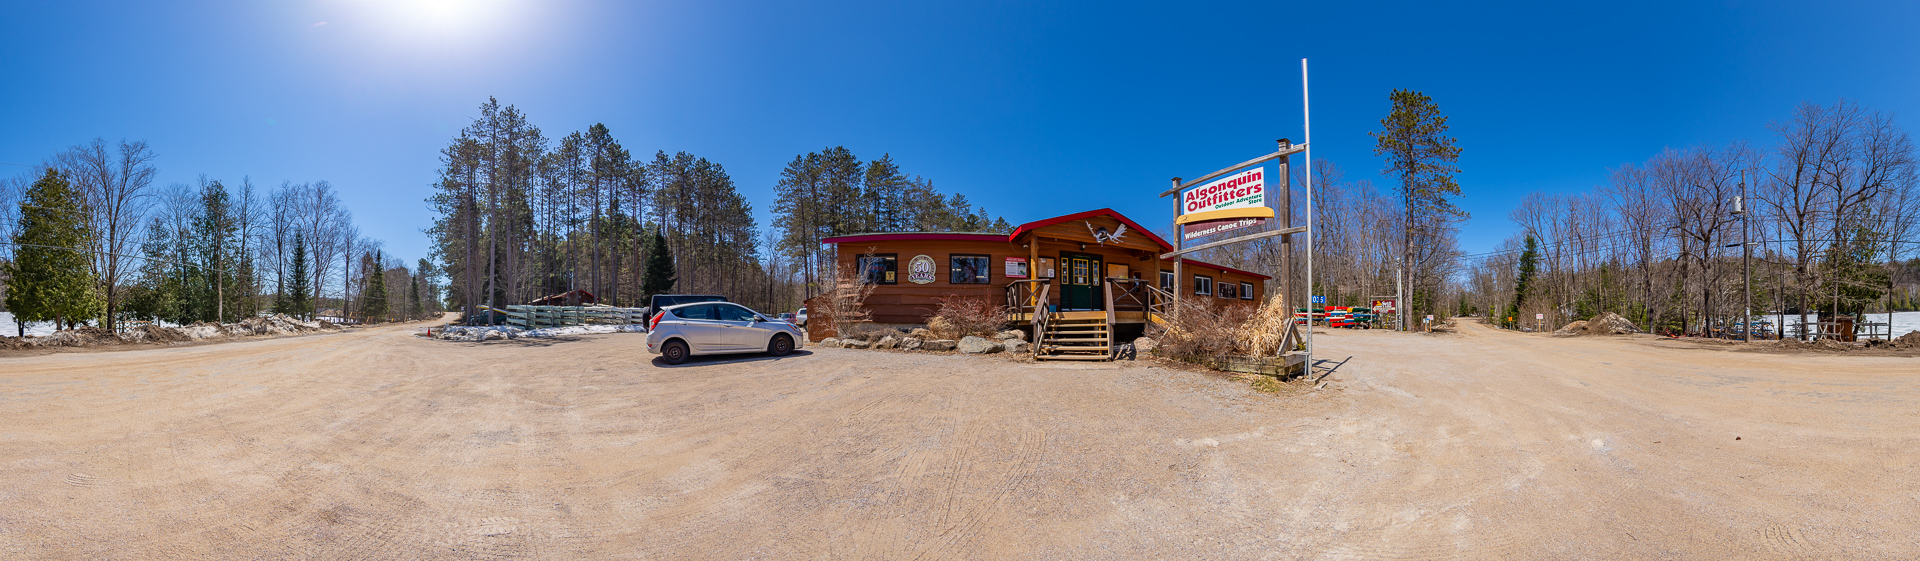 Algonquin Outfitters Oxtongue Lake Store